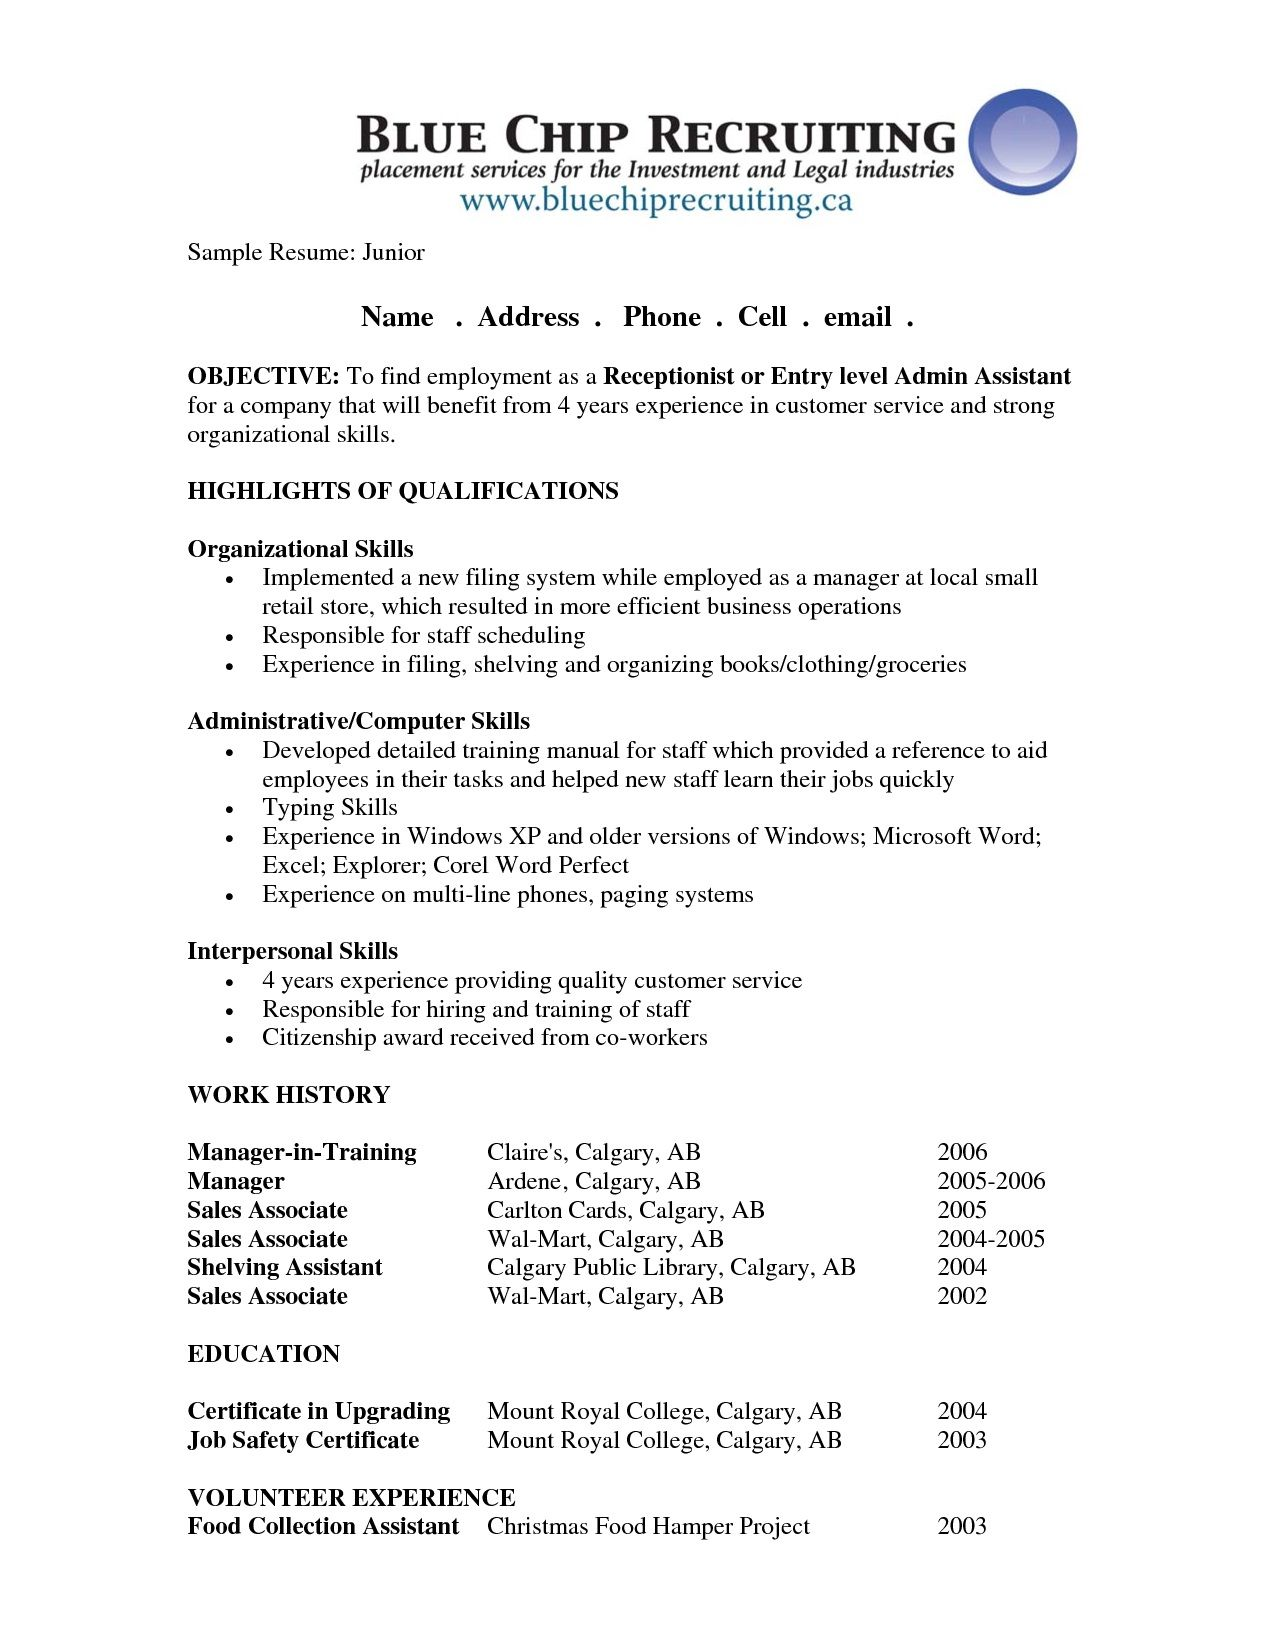 Good Resume Examples For Jobs Pin By Job Resume On Job Resume Samples Resume Objective Sample